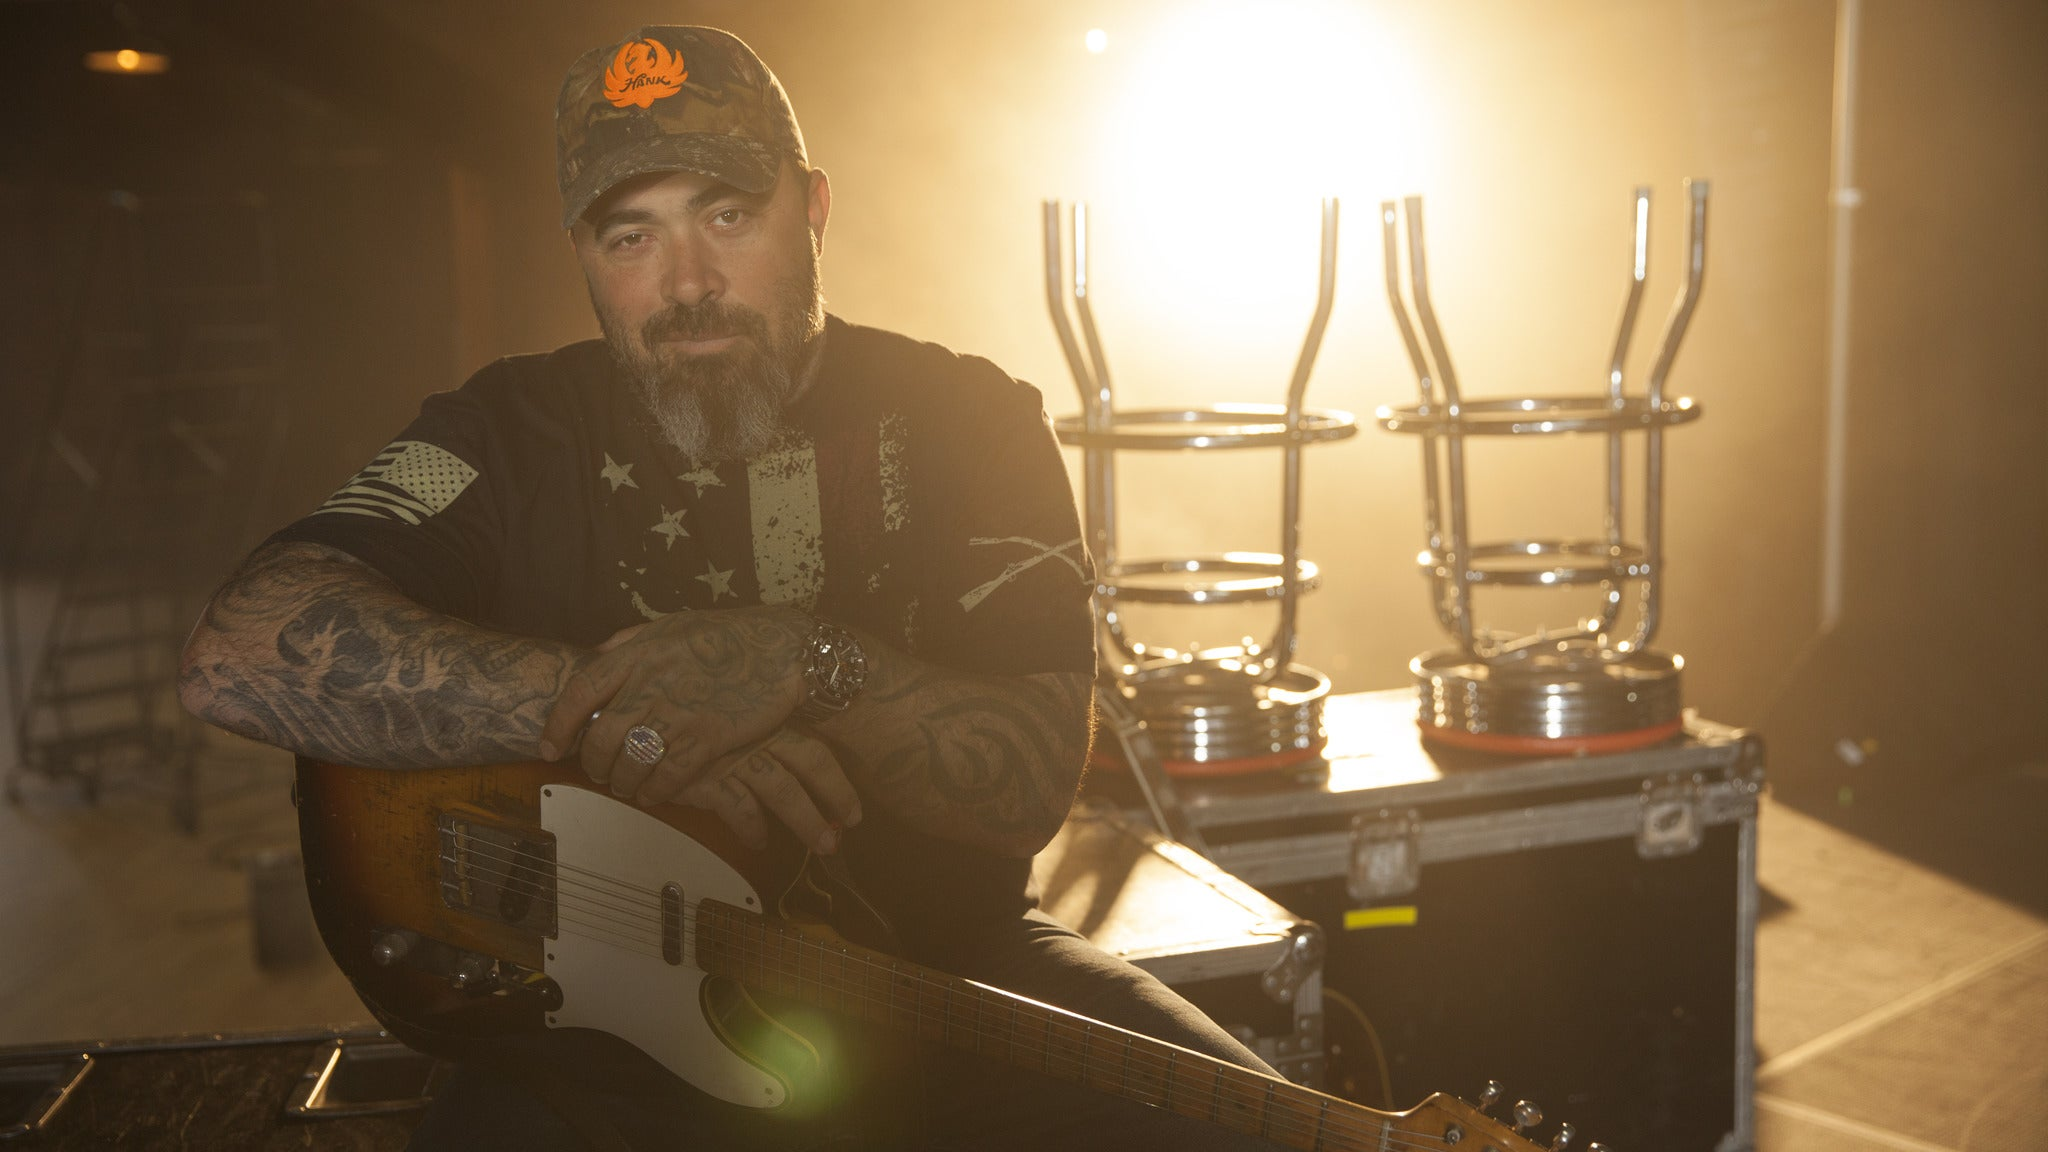 Aaron Lewis, The Sinner Tour at Orpheum Theater